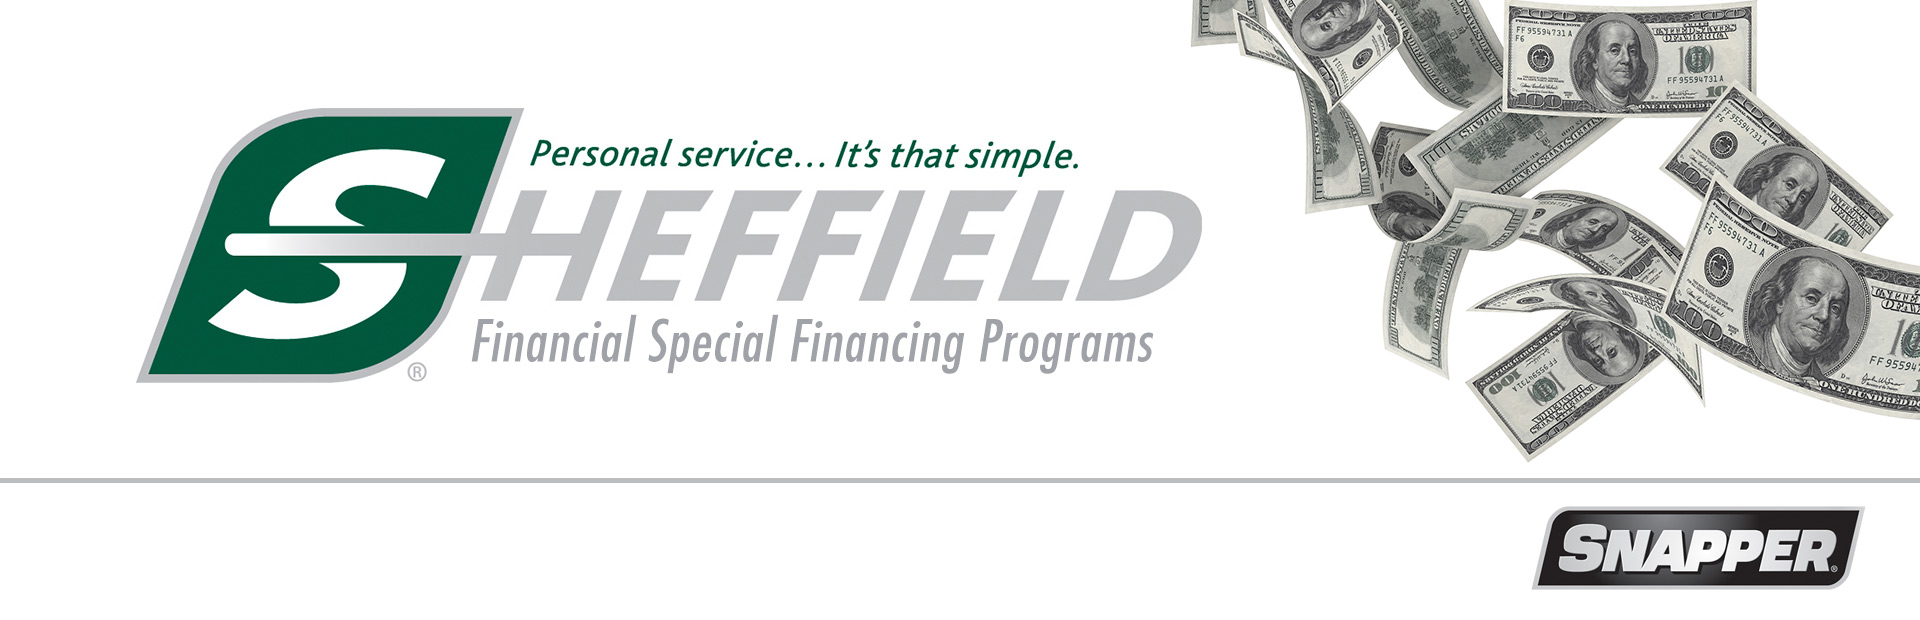 Snapper: Sheffield Financial Special Financing Programs